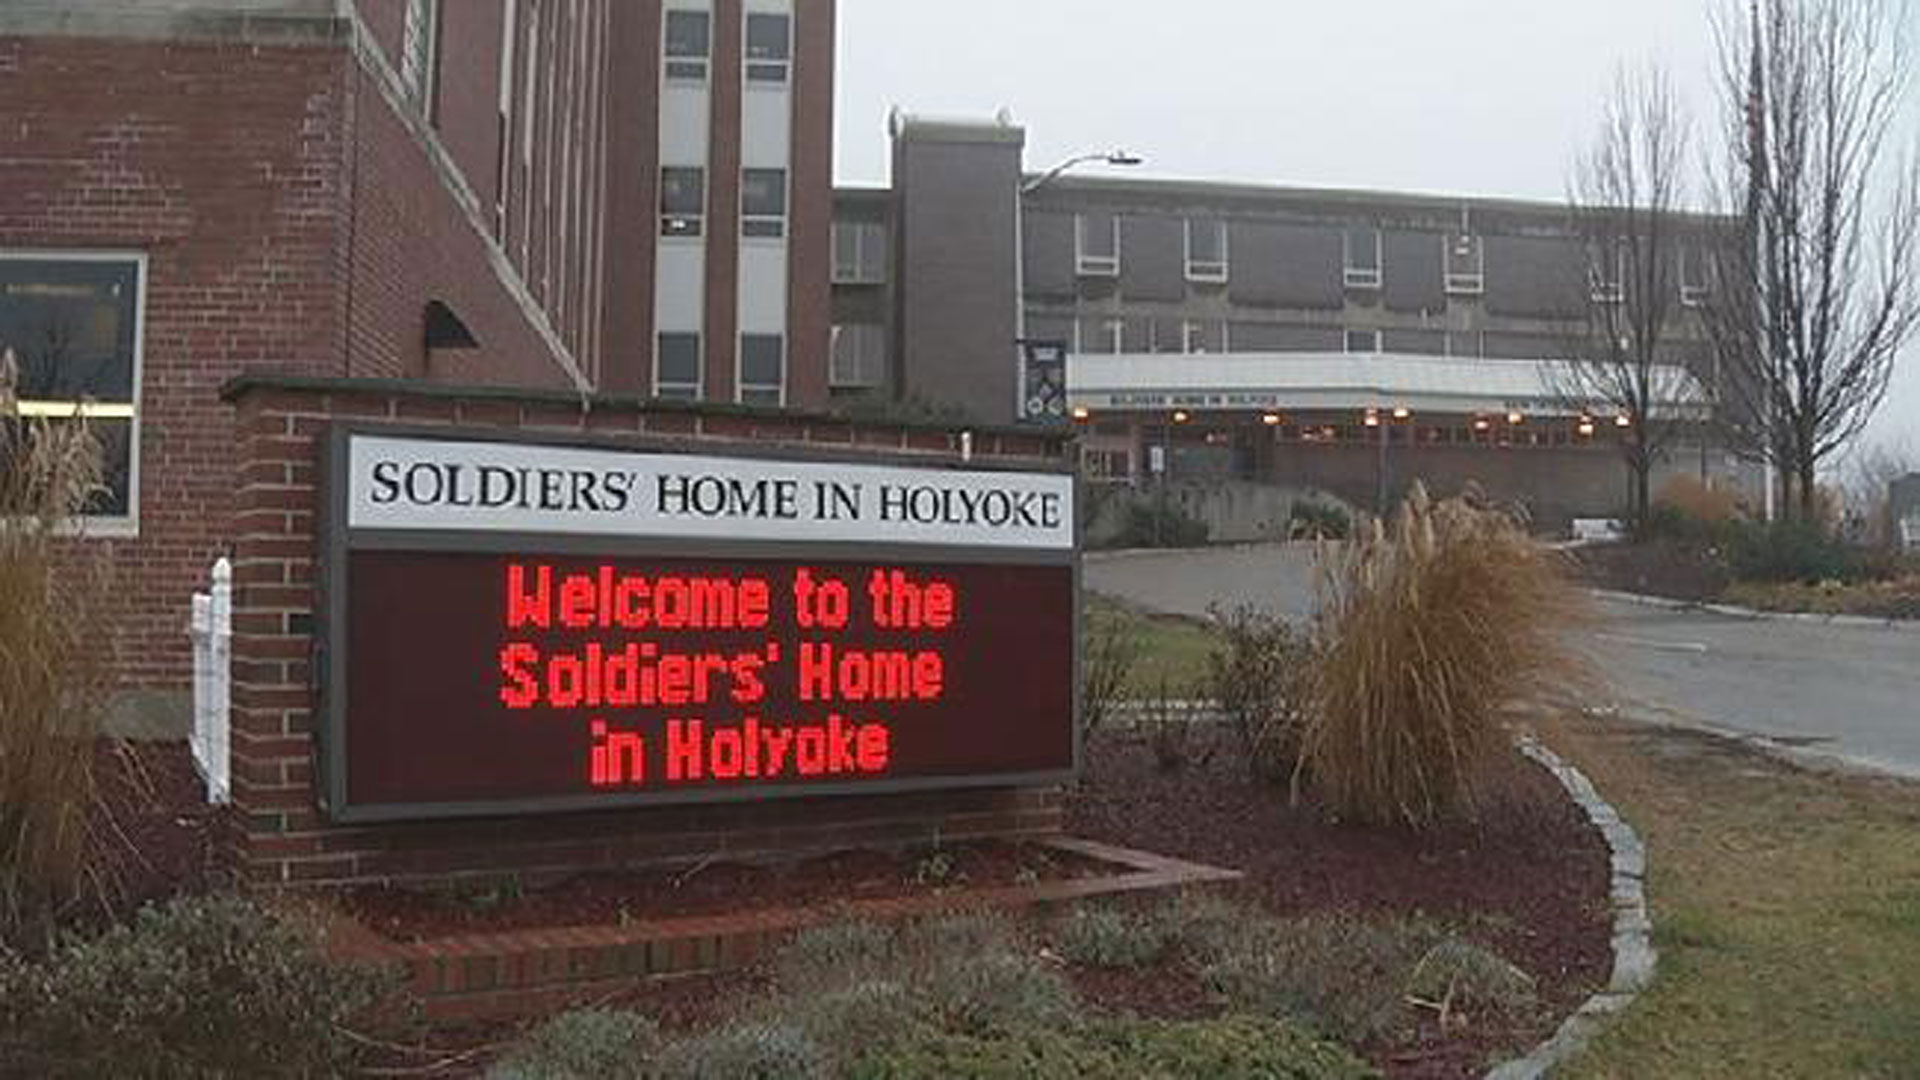 Soldiers' Home